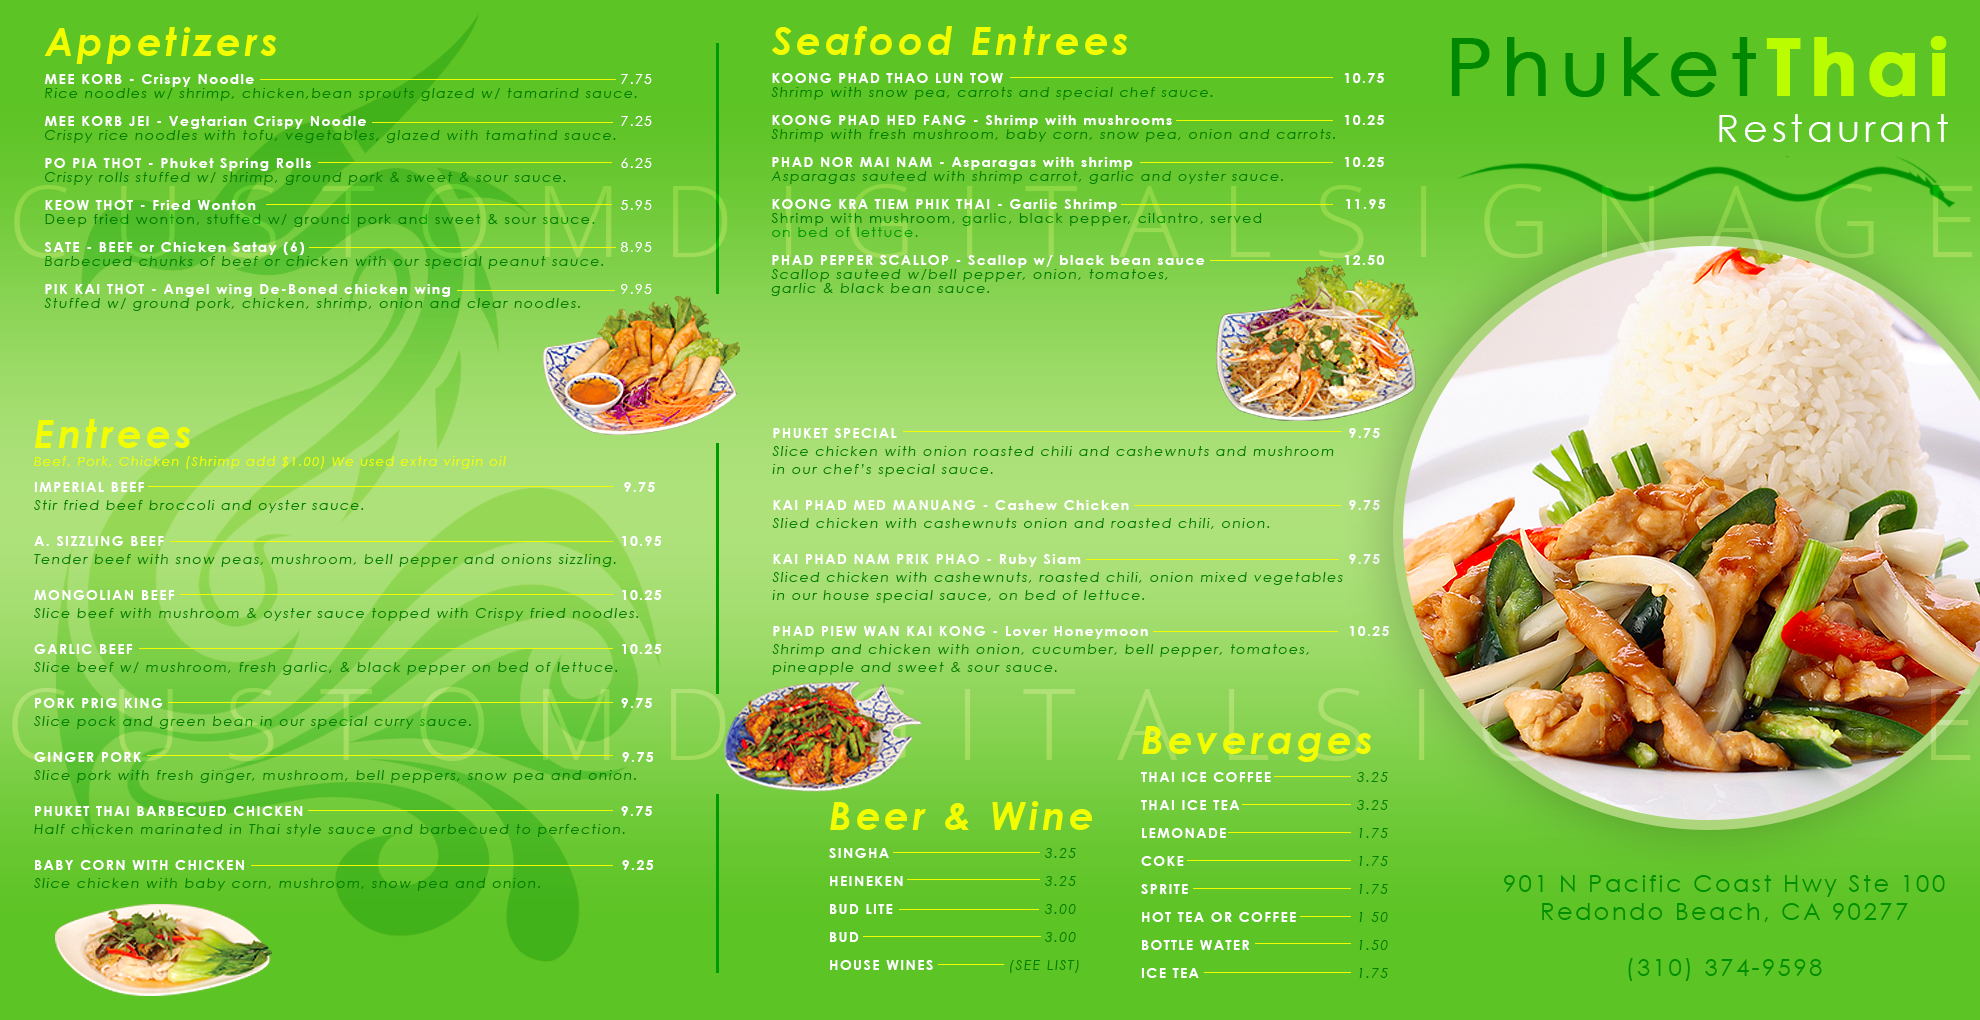 Template-Thai-Restaurant-Digital-Menu-2